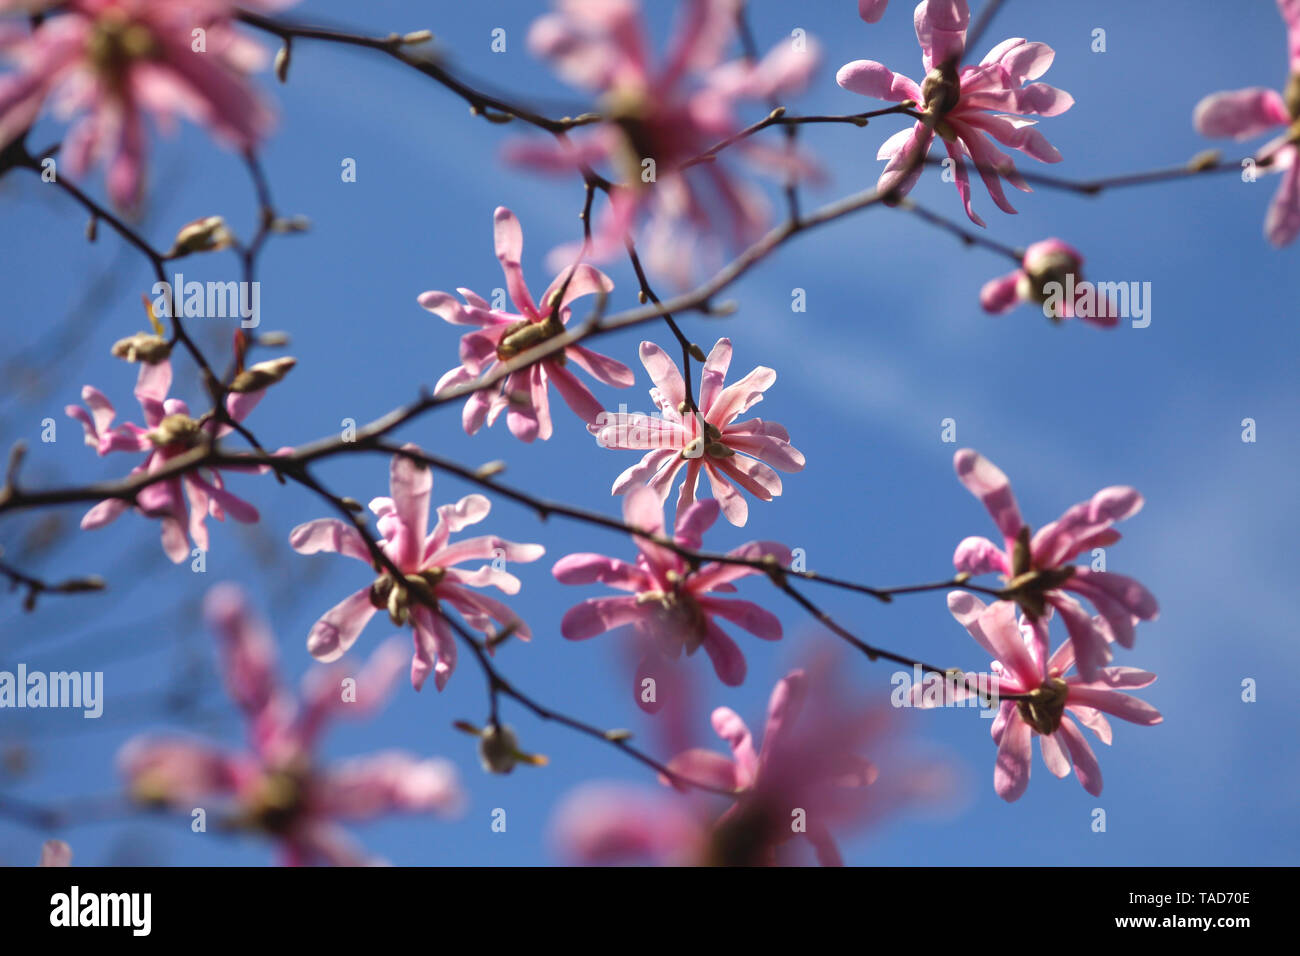 Pink blossoms of magnolia tree against blue sky - Stock Image